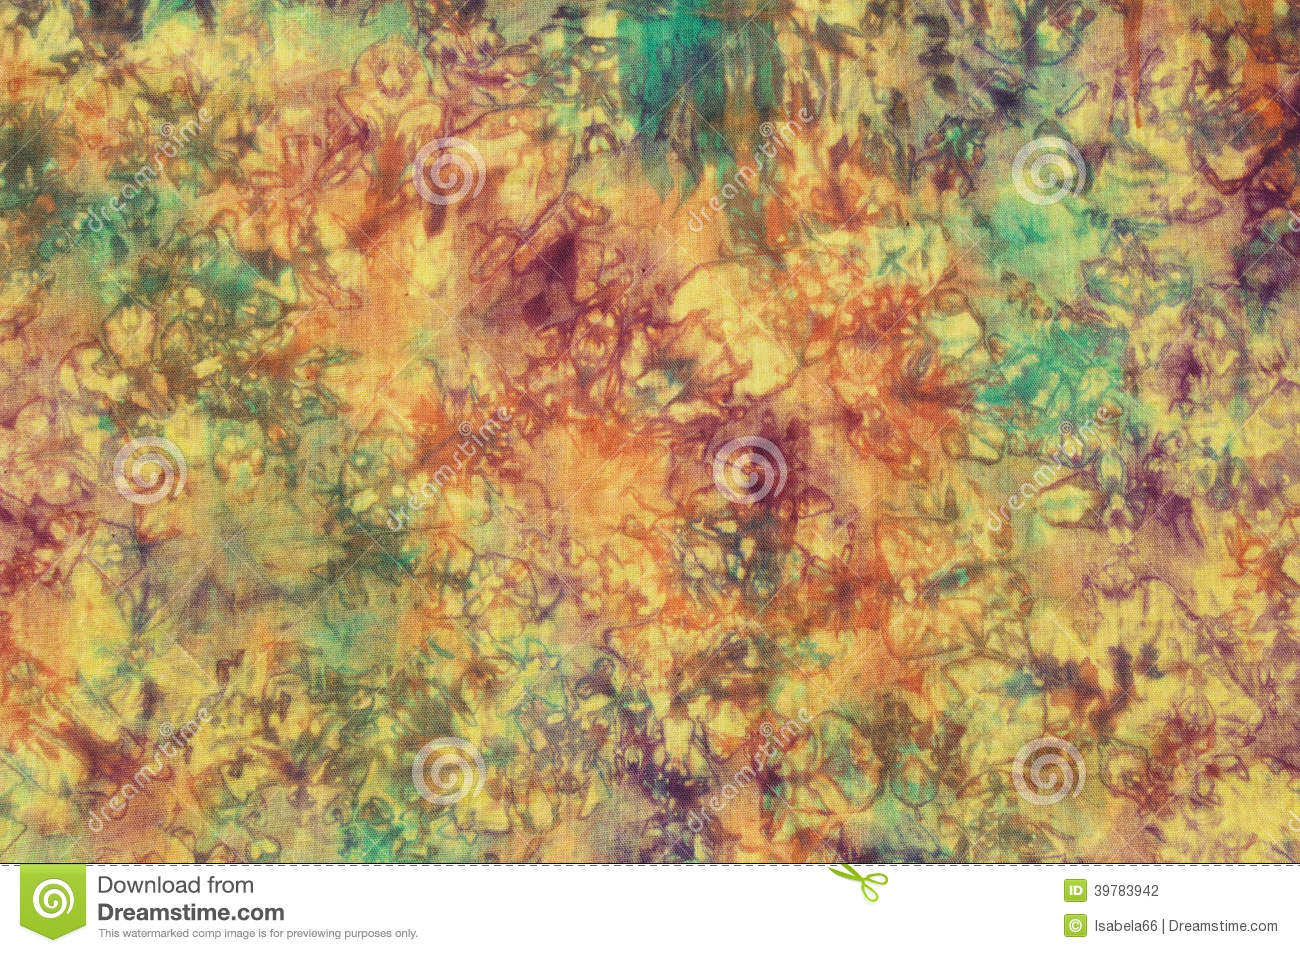 Background batik pattern stock photography image 803022 - Background Pattern Colorful Cotton Batik Stock Photography